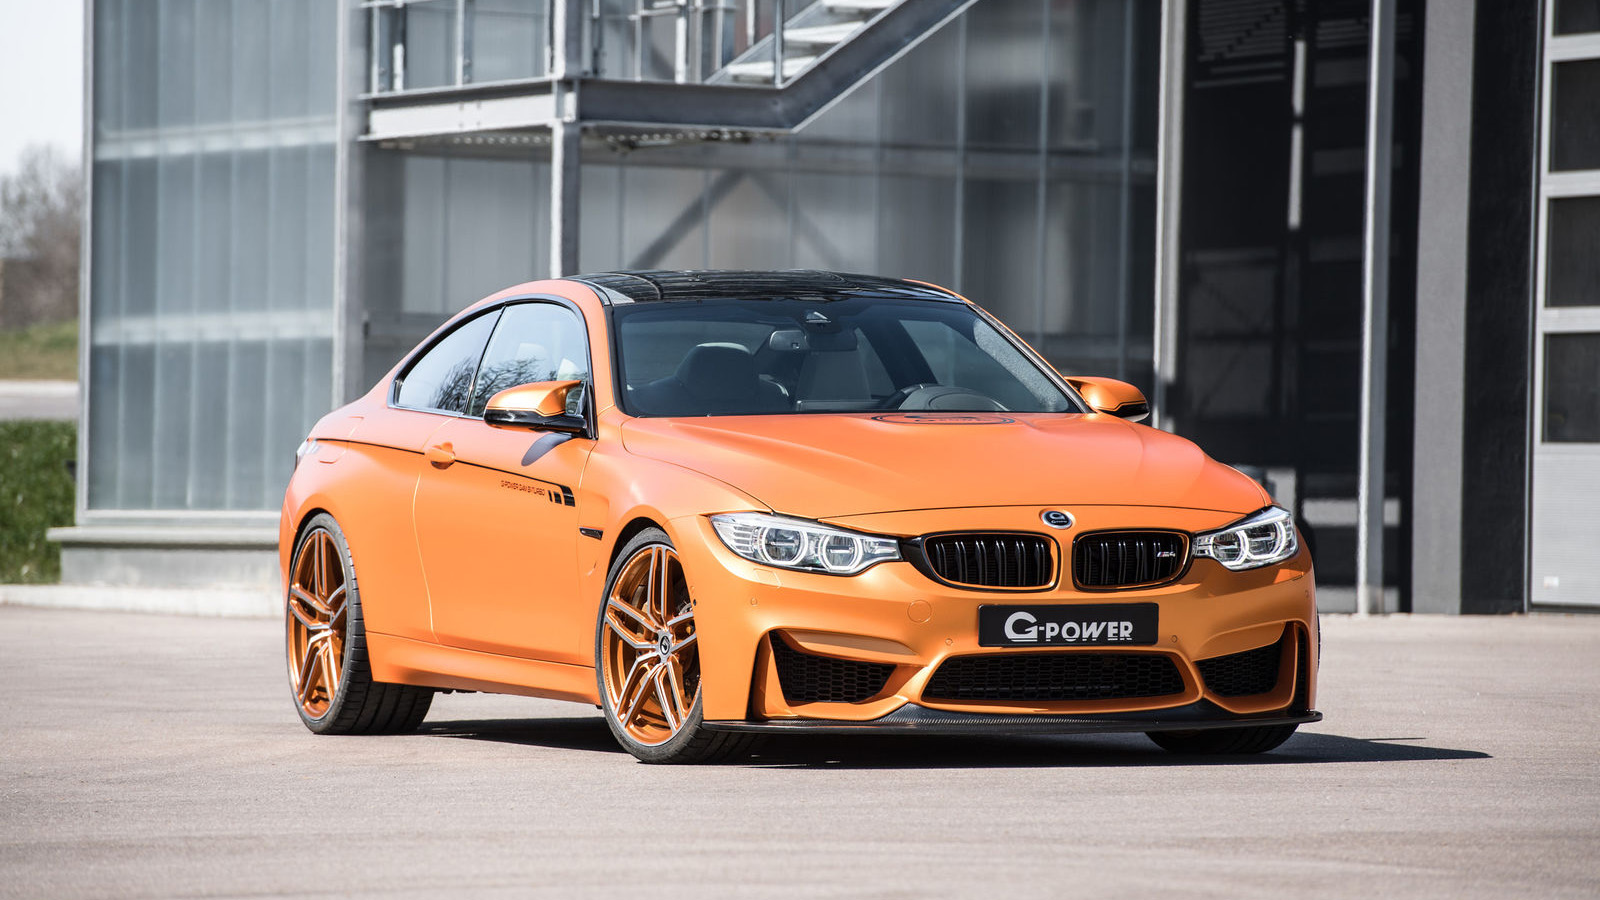 2017 bmw m4 by g power top speed. Black Bedroom Furniture Sets. Home Design Ideas